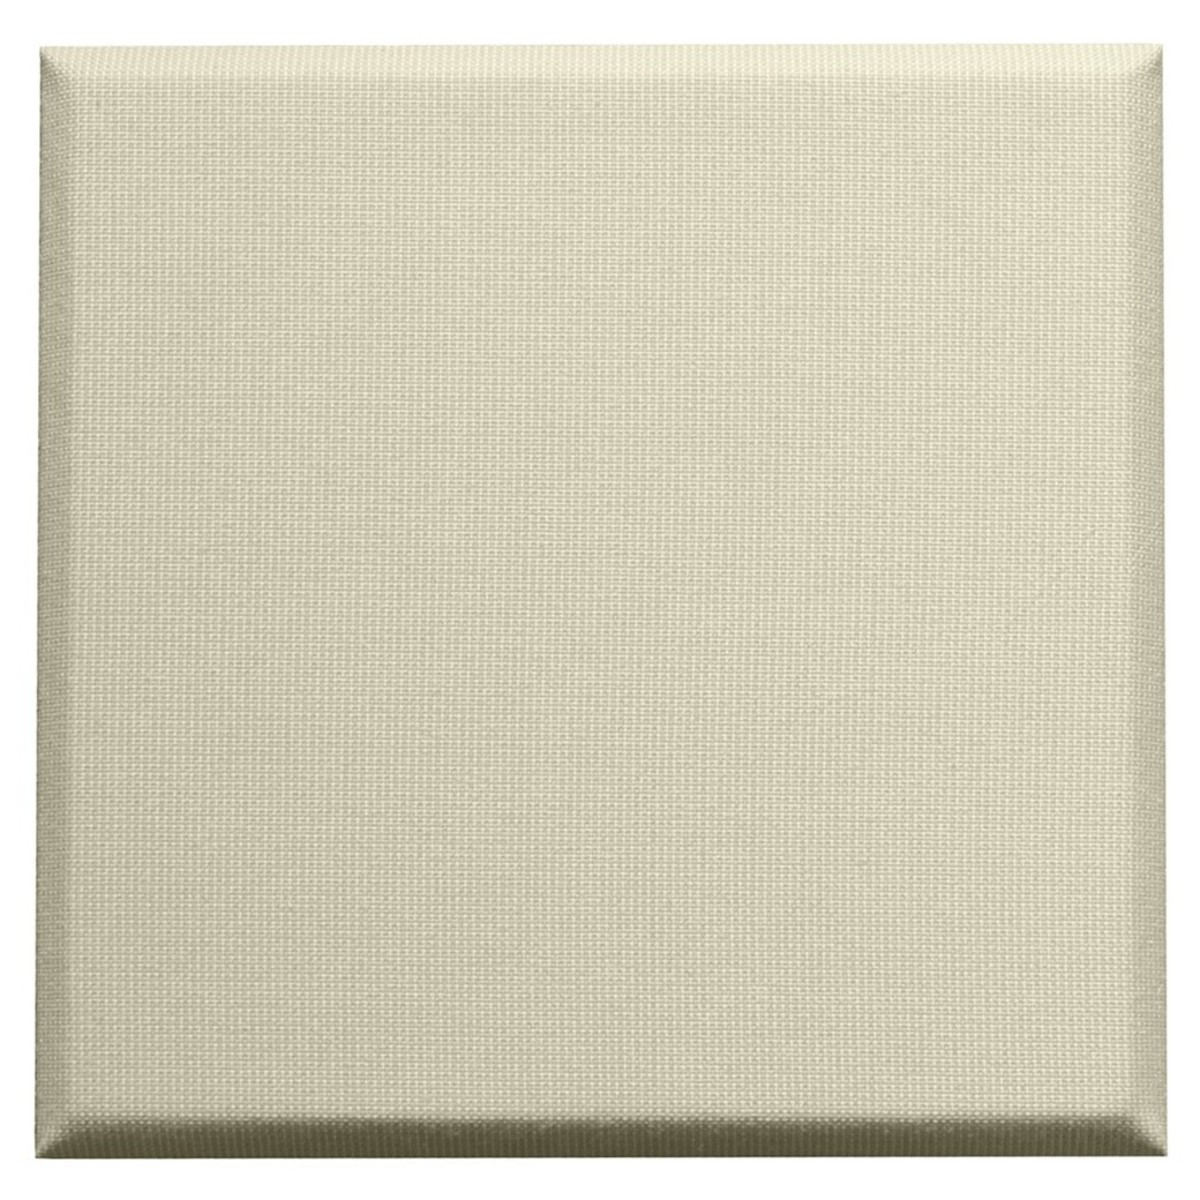 Click to view product details and reviews for Primacoustic 2 Control Cubes With Beveled Edge In Beige Pack Of 12.